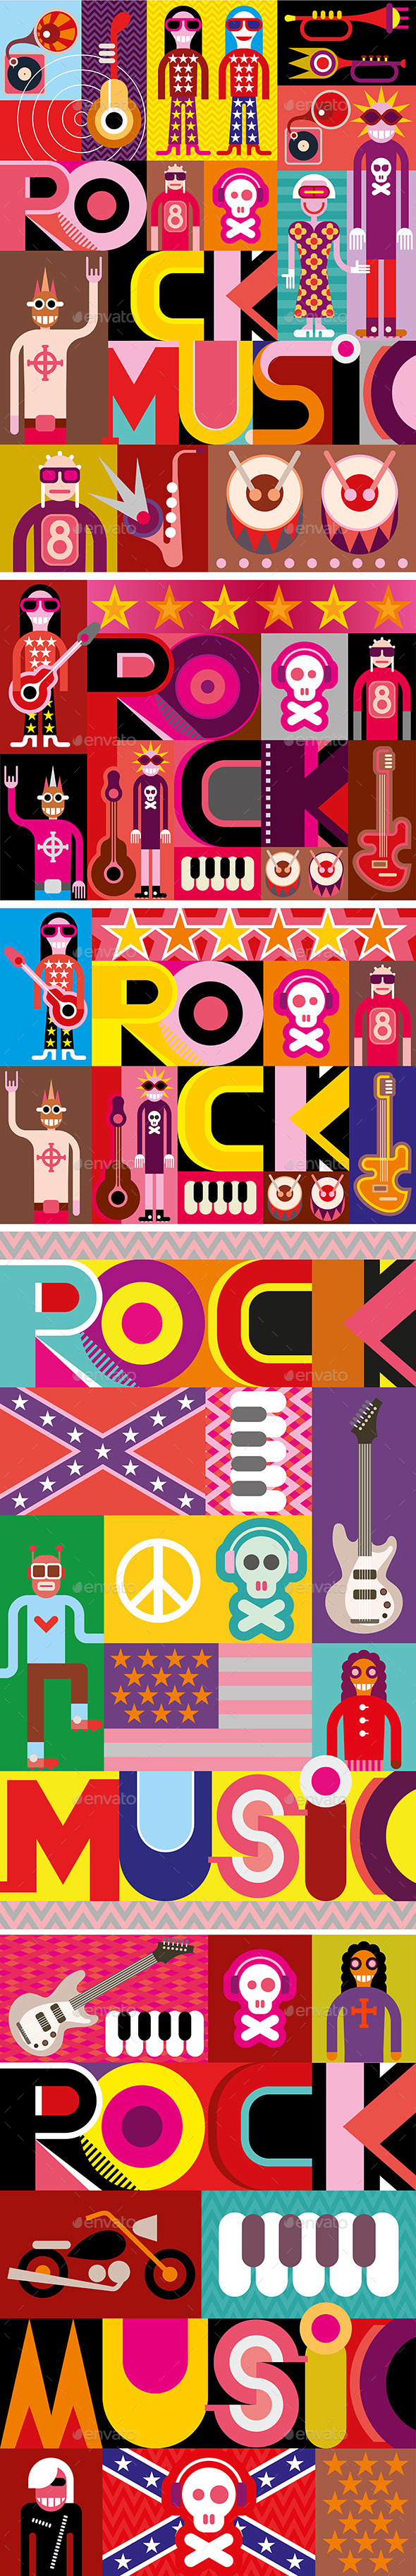 Five Rock Music Posters - People Characters